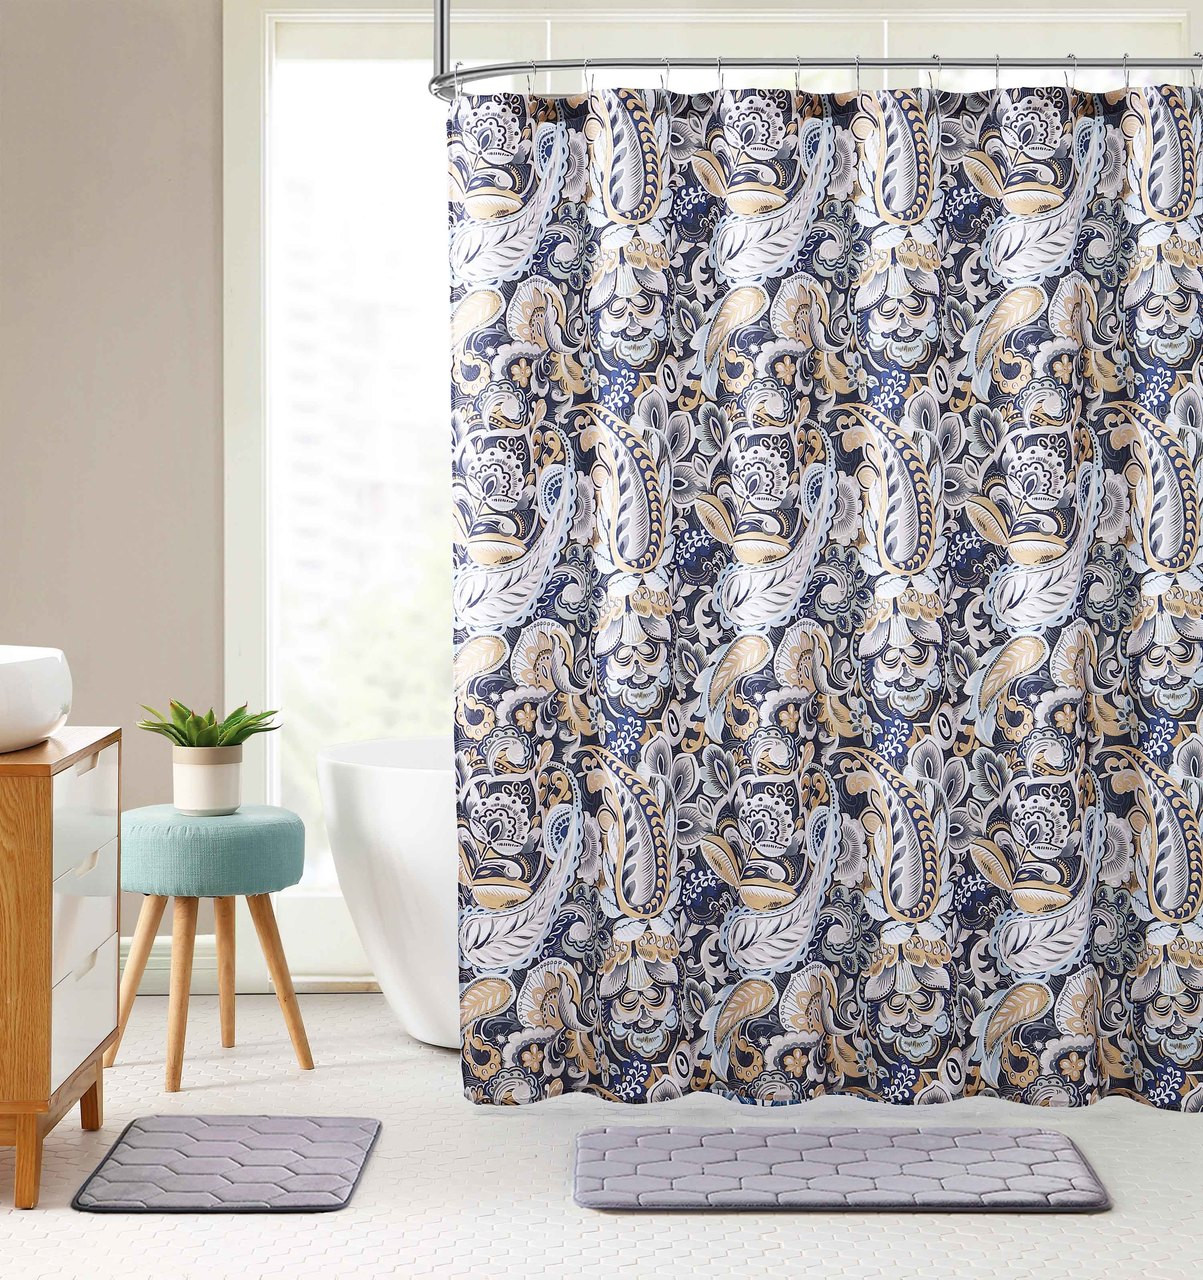 Elegant Navy Blue Beige Fabric Shower Curtain Large Floral Paisley Print Design 72 X 72 Inch